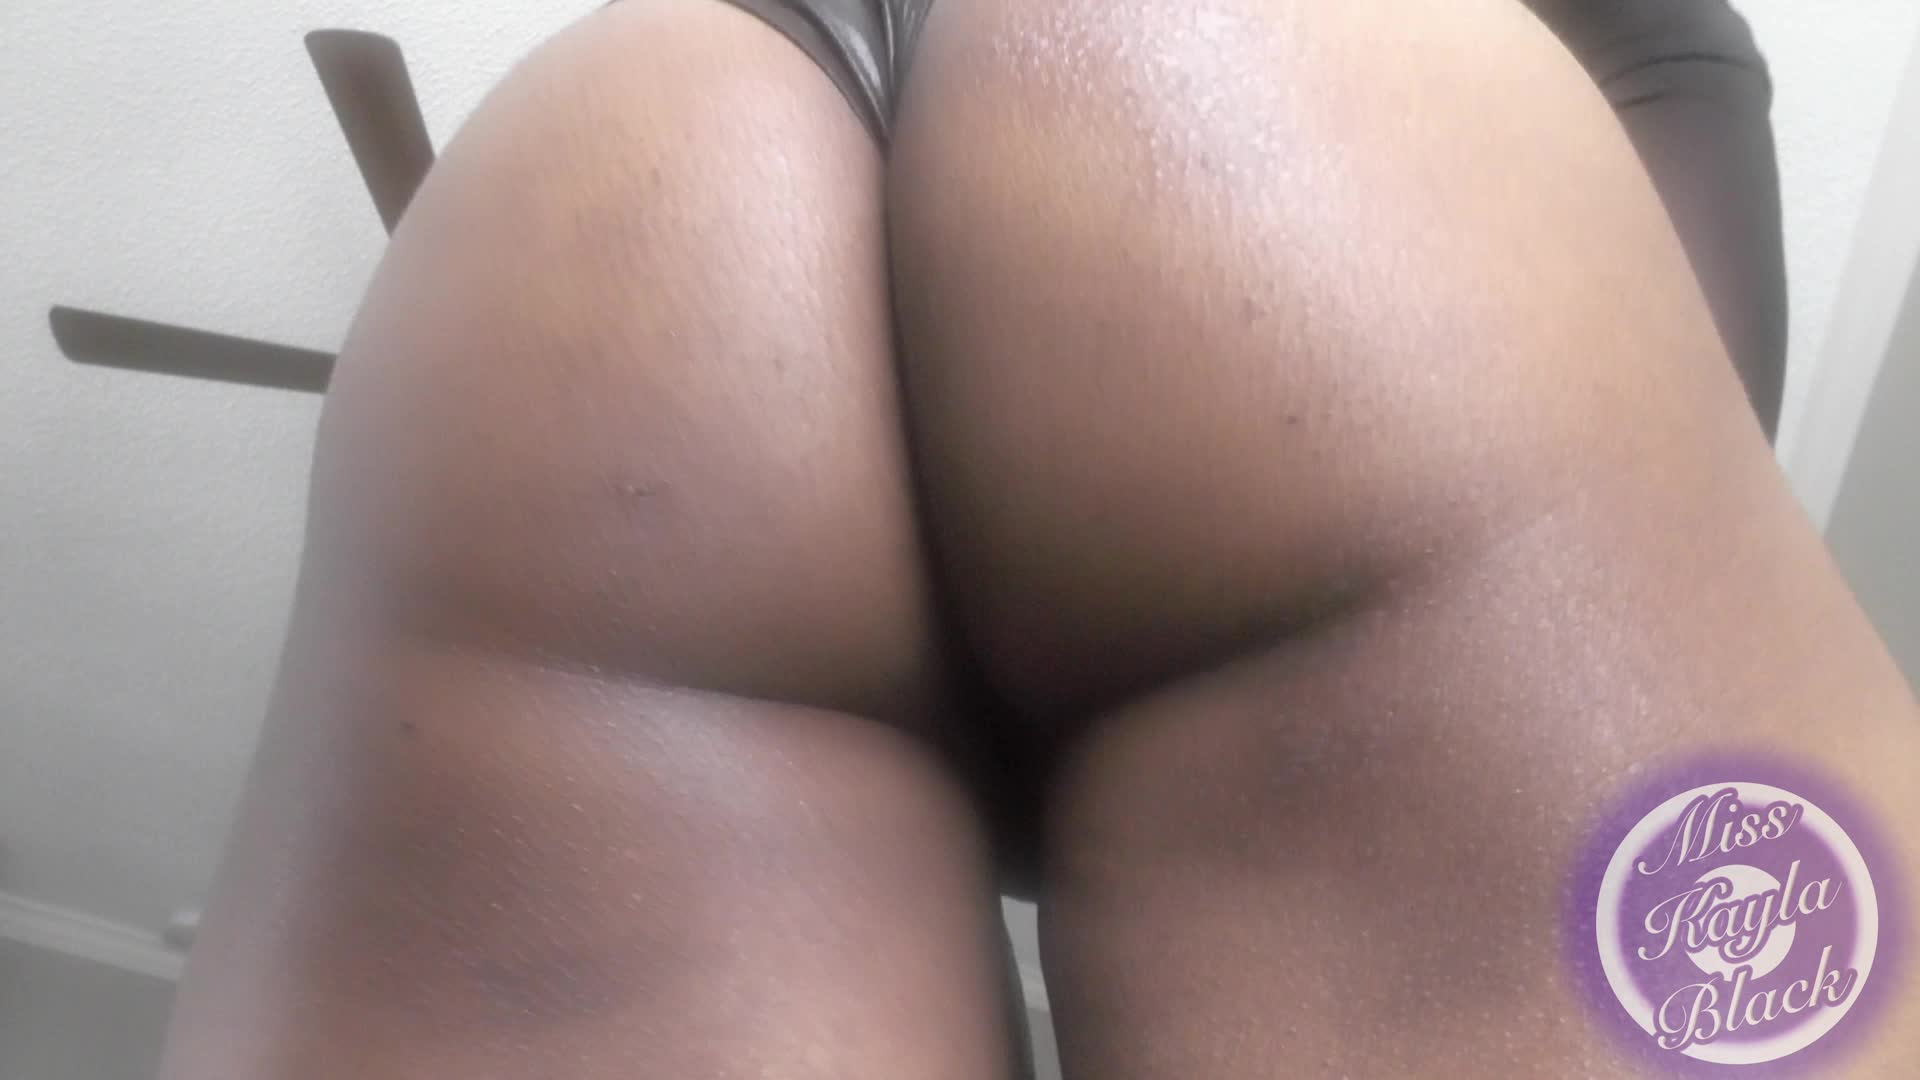 Oiled ebony feet miss kayla black go broke